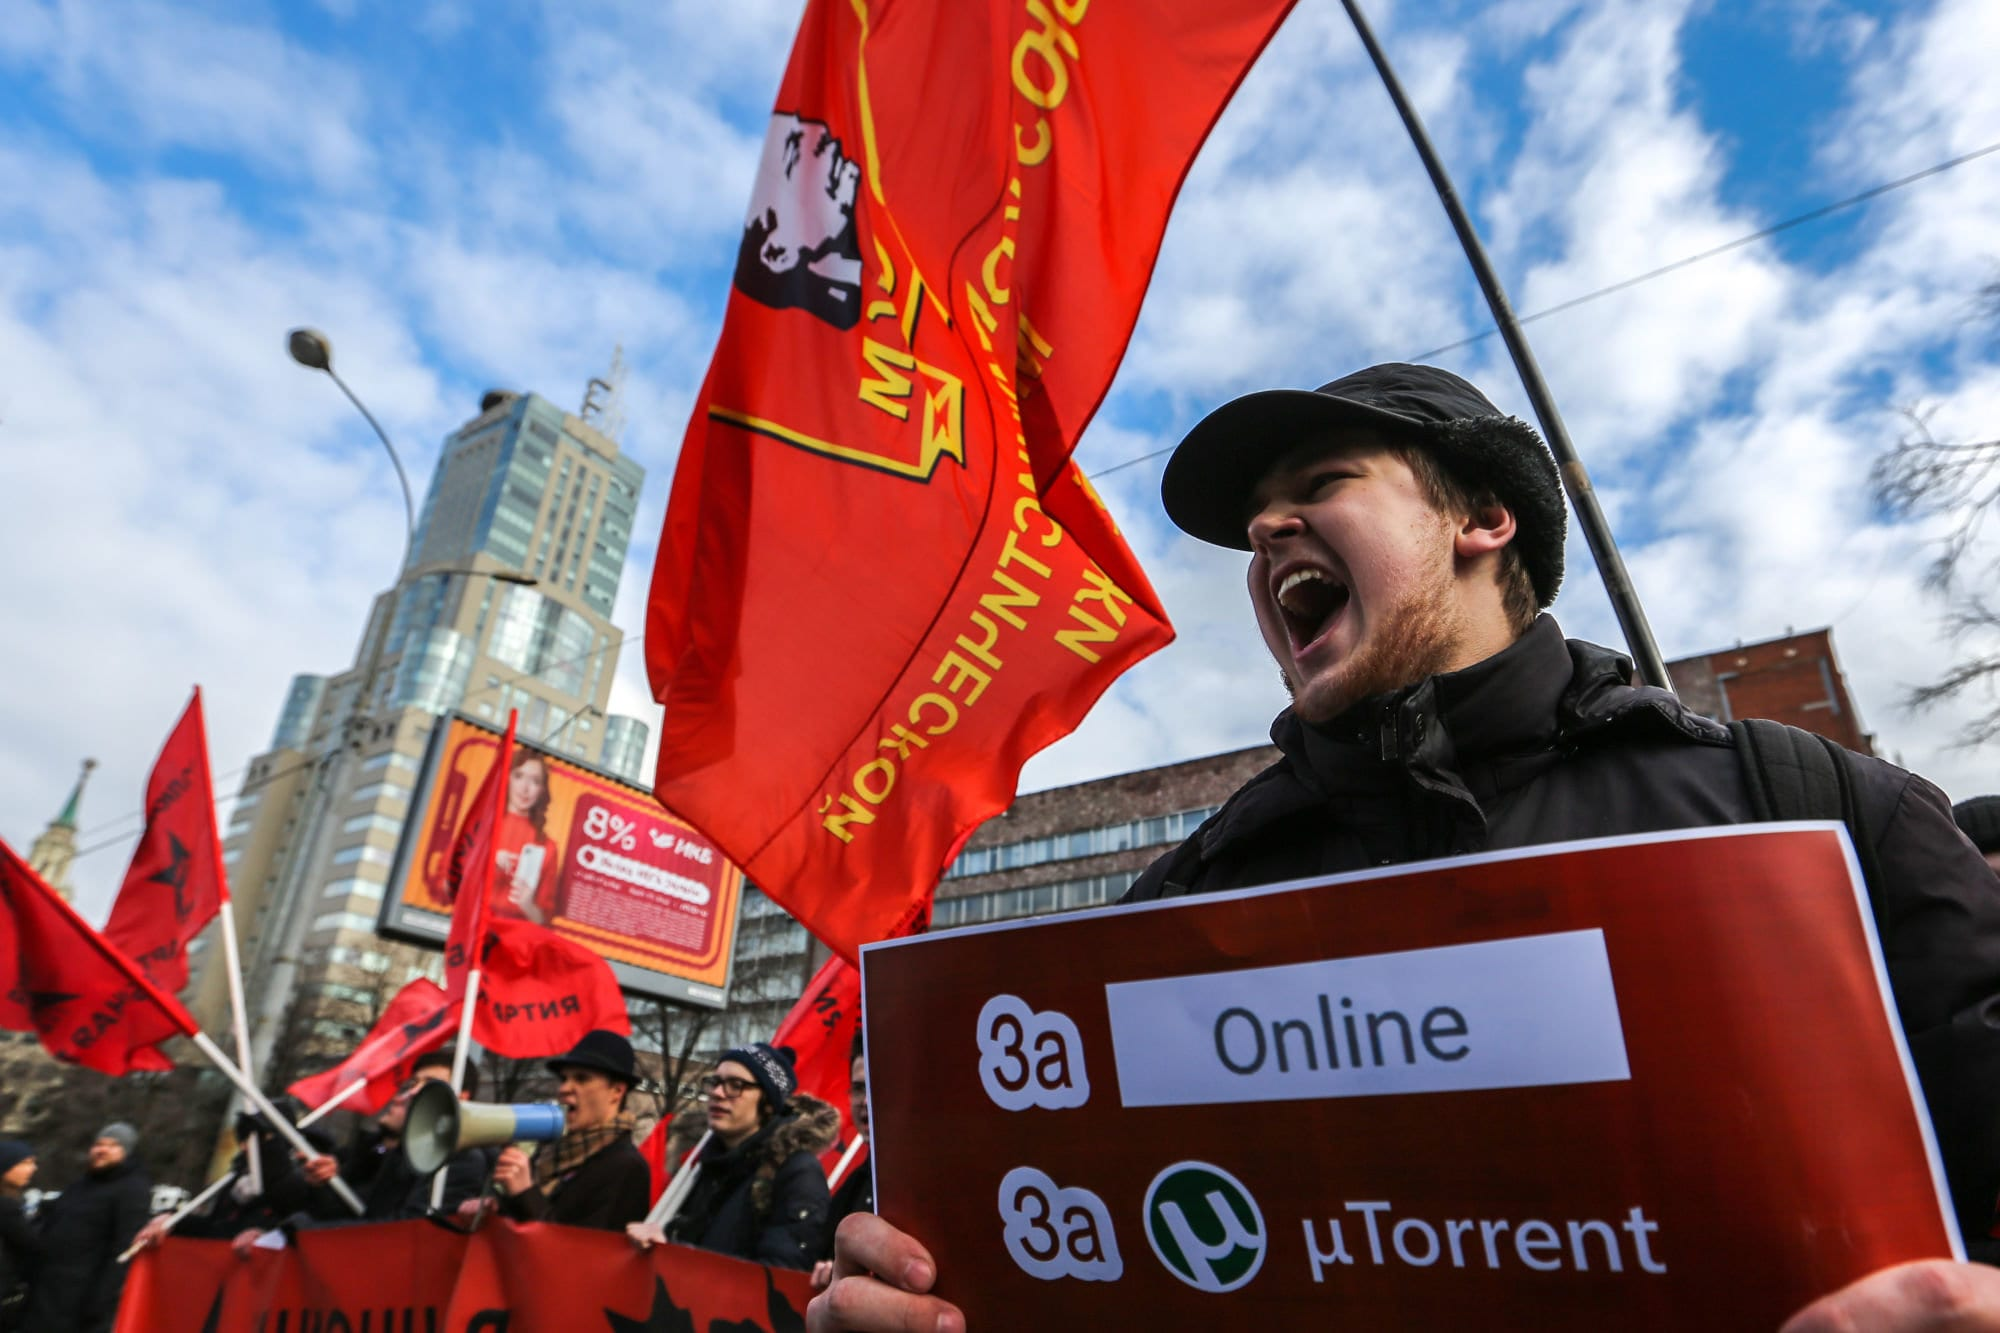 SOPA Images via Getty Images